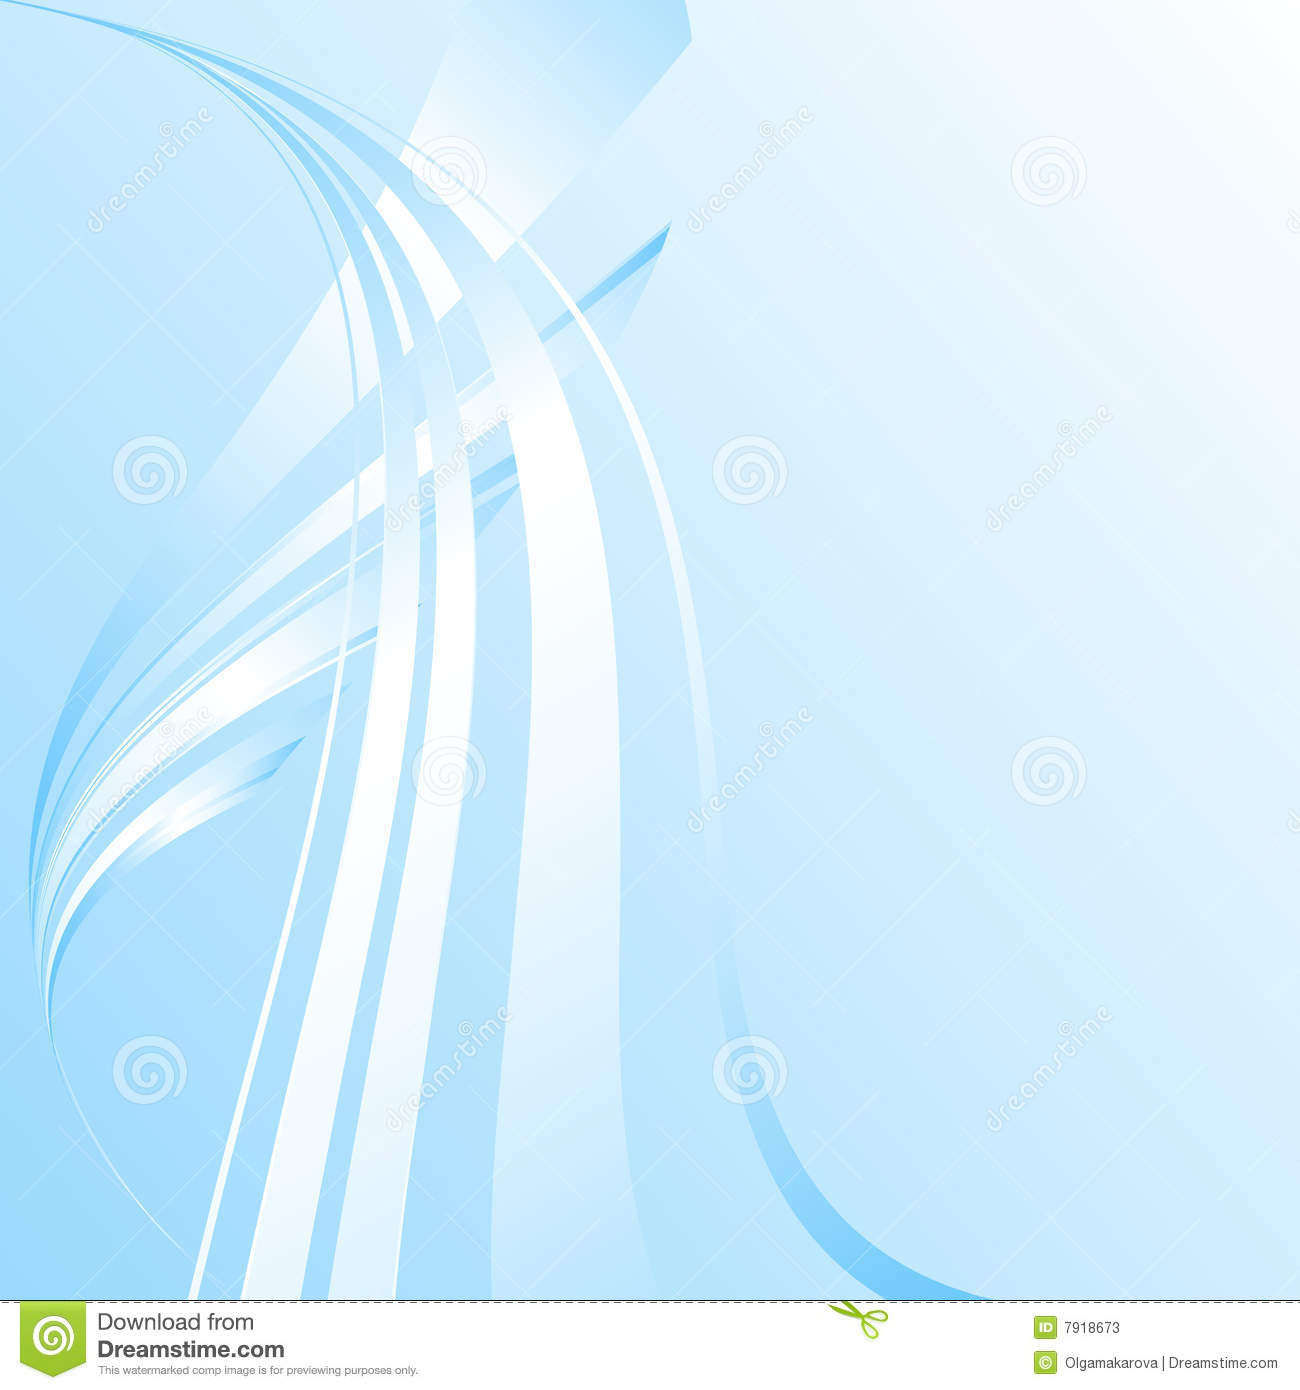 blue line wave background - photo #11